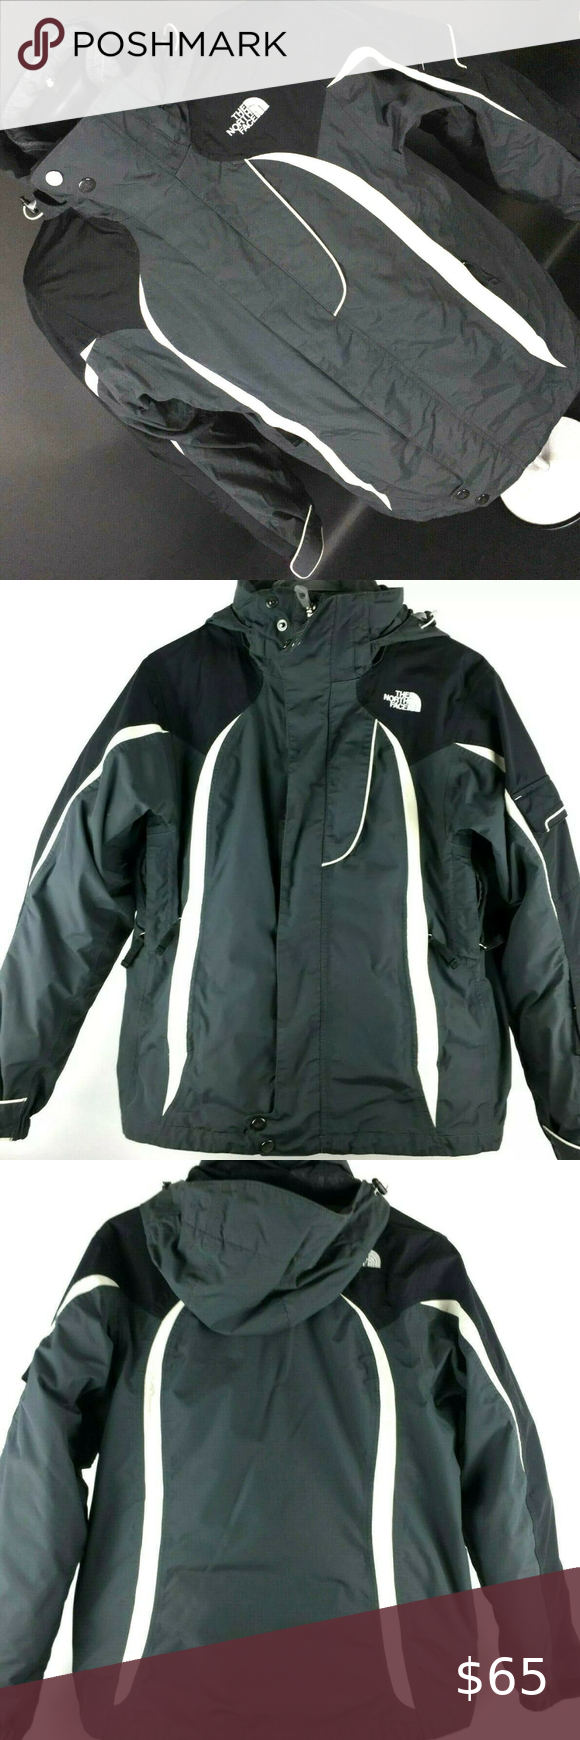 The North Face Womens Hyvent 2 In 1 Jacket Coat North Face Women Black North Face North Face Jacket [ 1740 x 580 Pixel ]